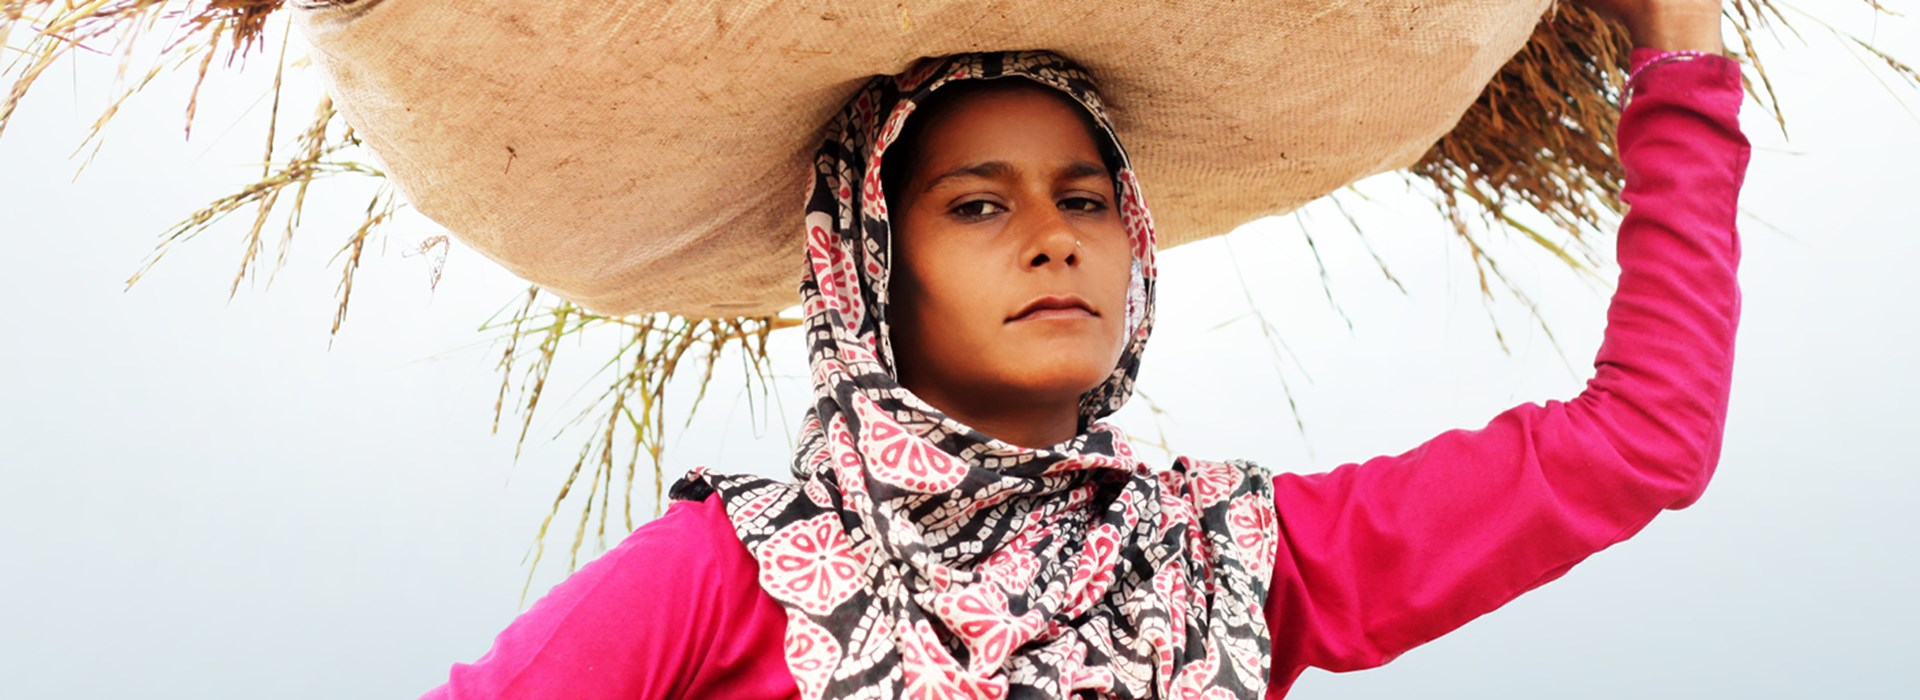 A young Indian woman carrying a basket on her head